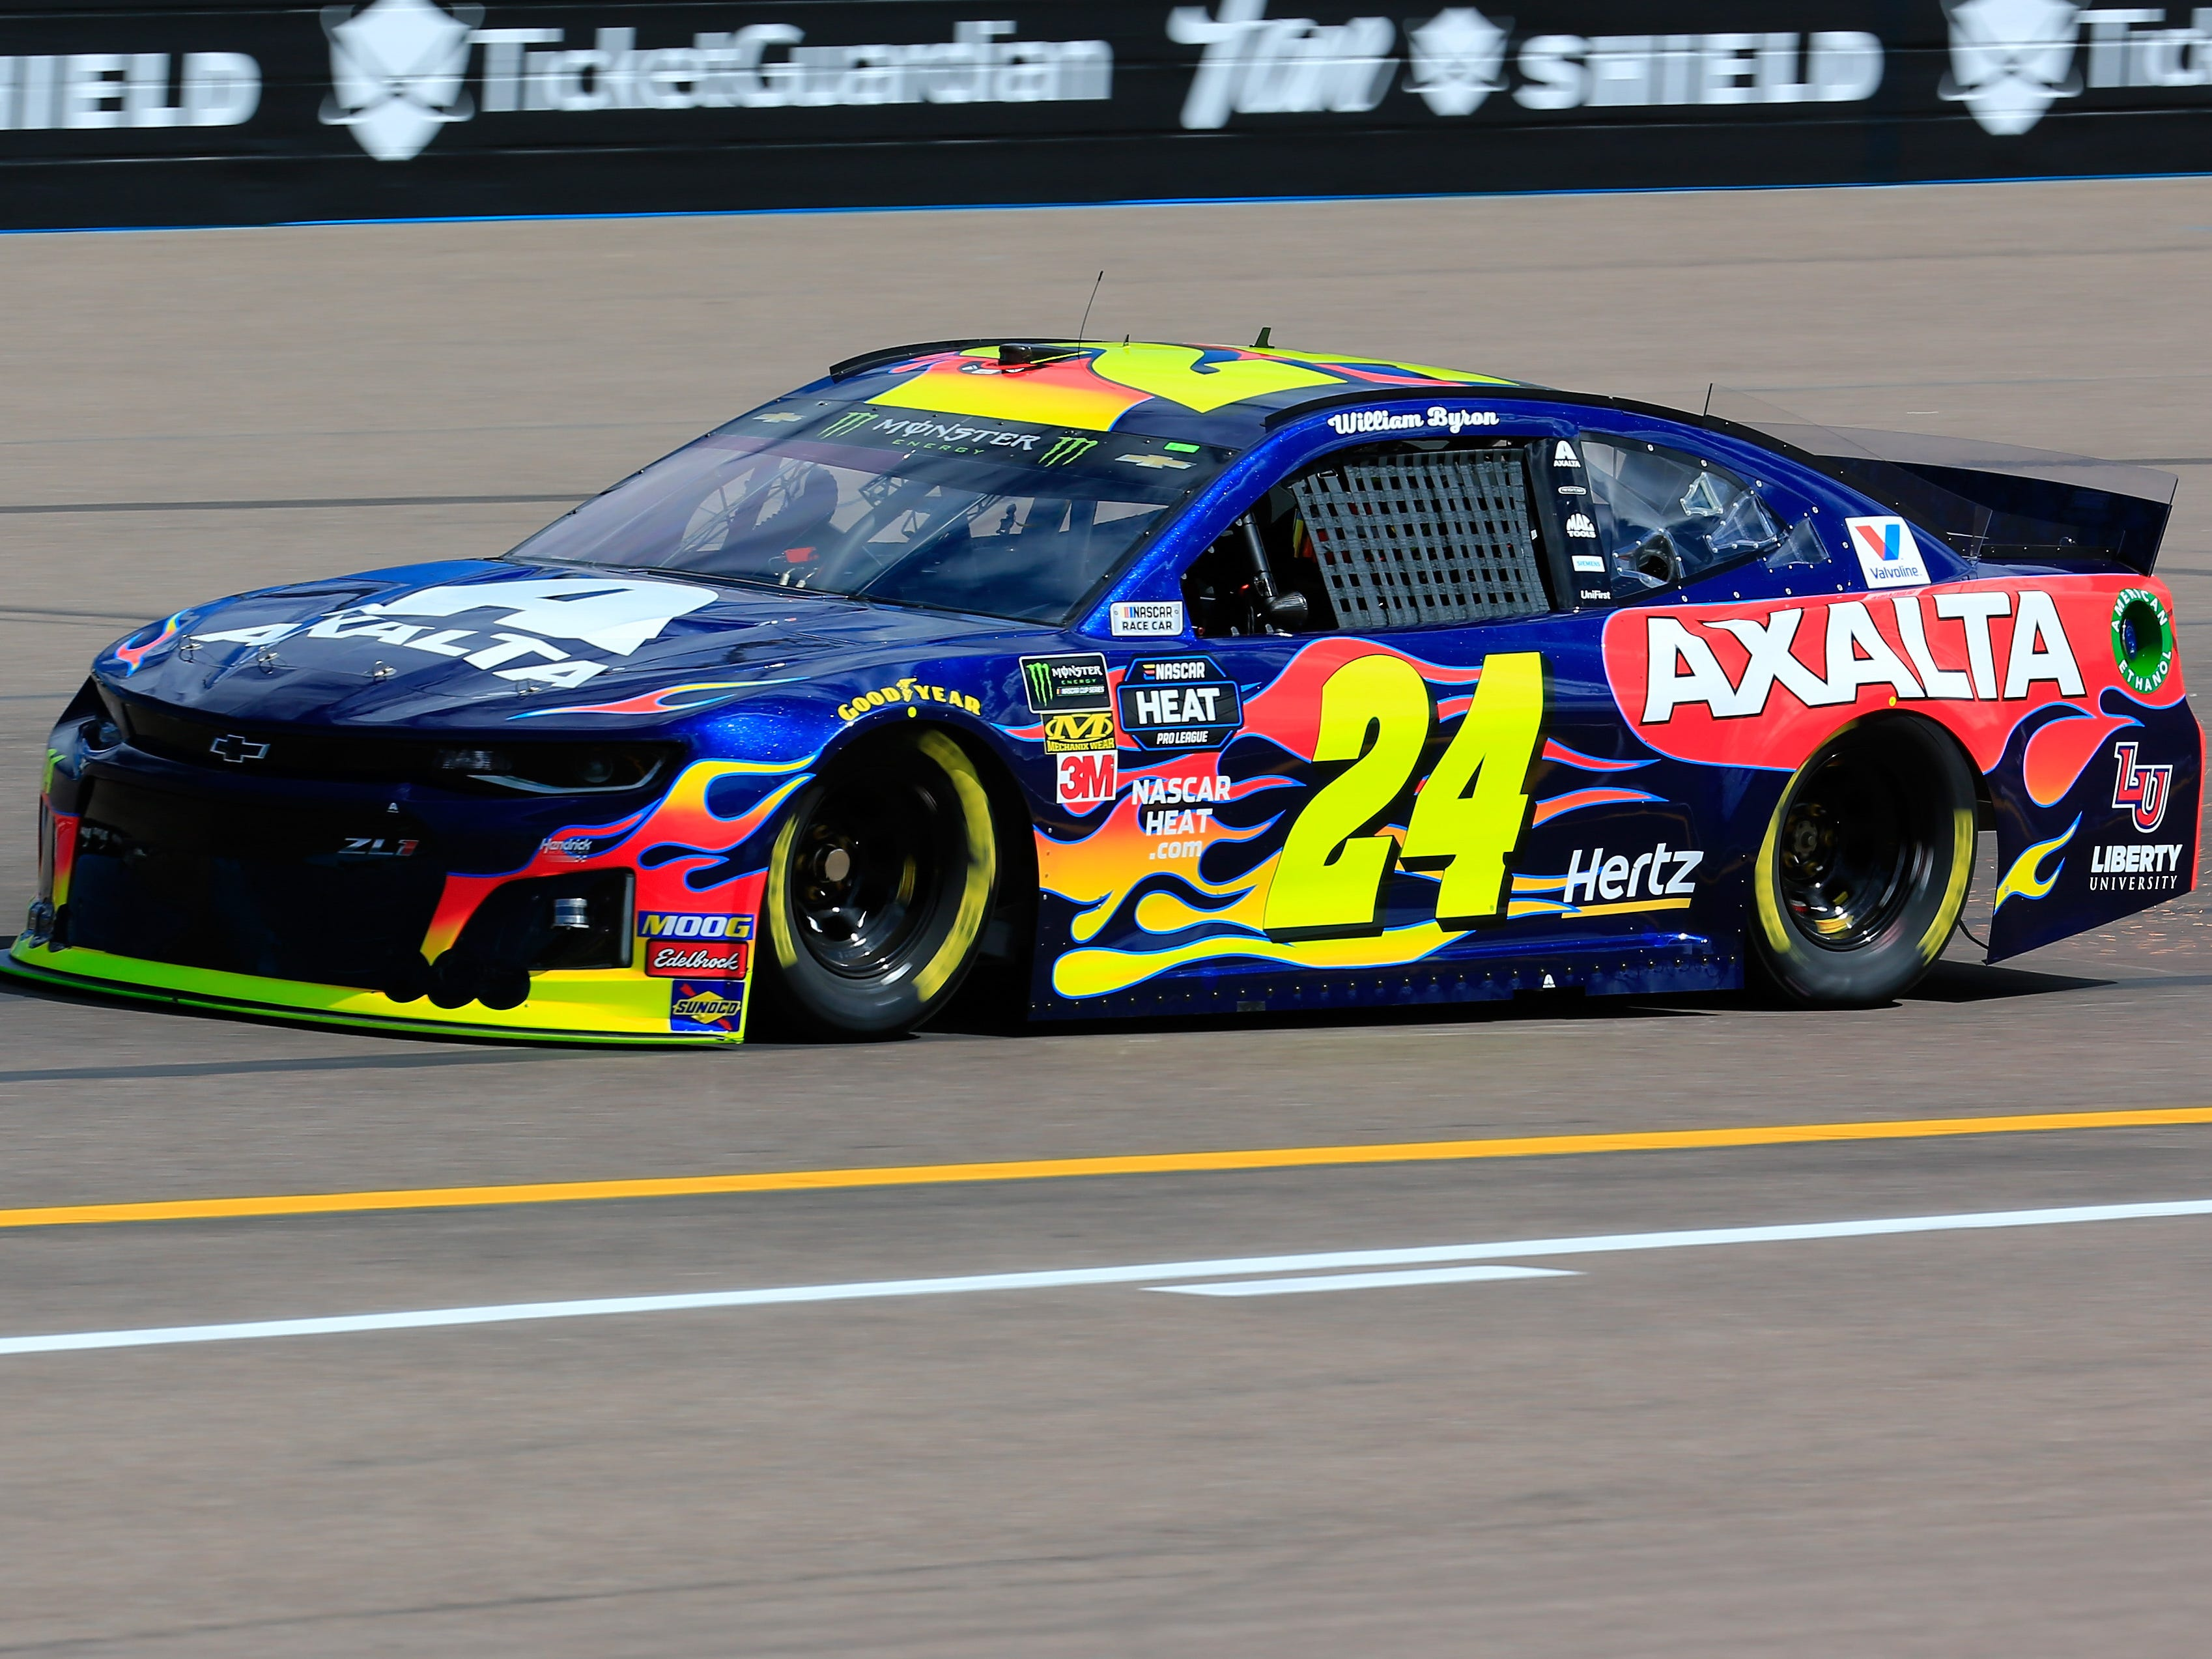 AVONDALE, AZ - MARCH 08: William Byron, driver of the #24 Axalta Chevrolet, practices for the Monster Energy NASCAR Cup Series TicketGuardian 500 at ISM Raceway on March 8, 2019 in Avondale, Arizona.